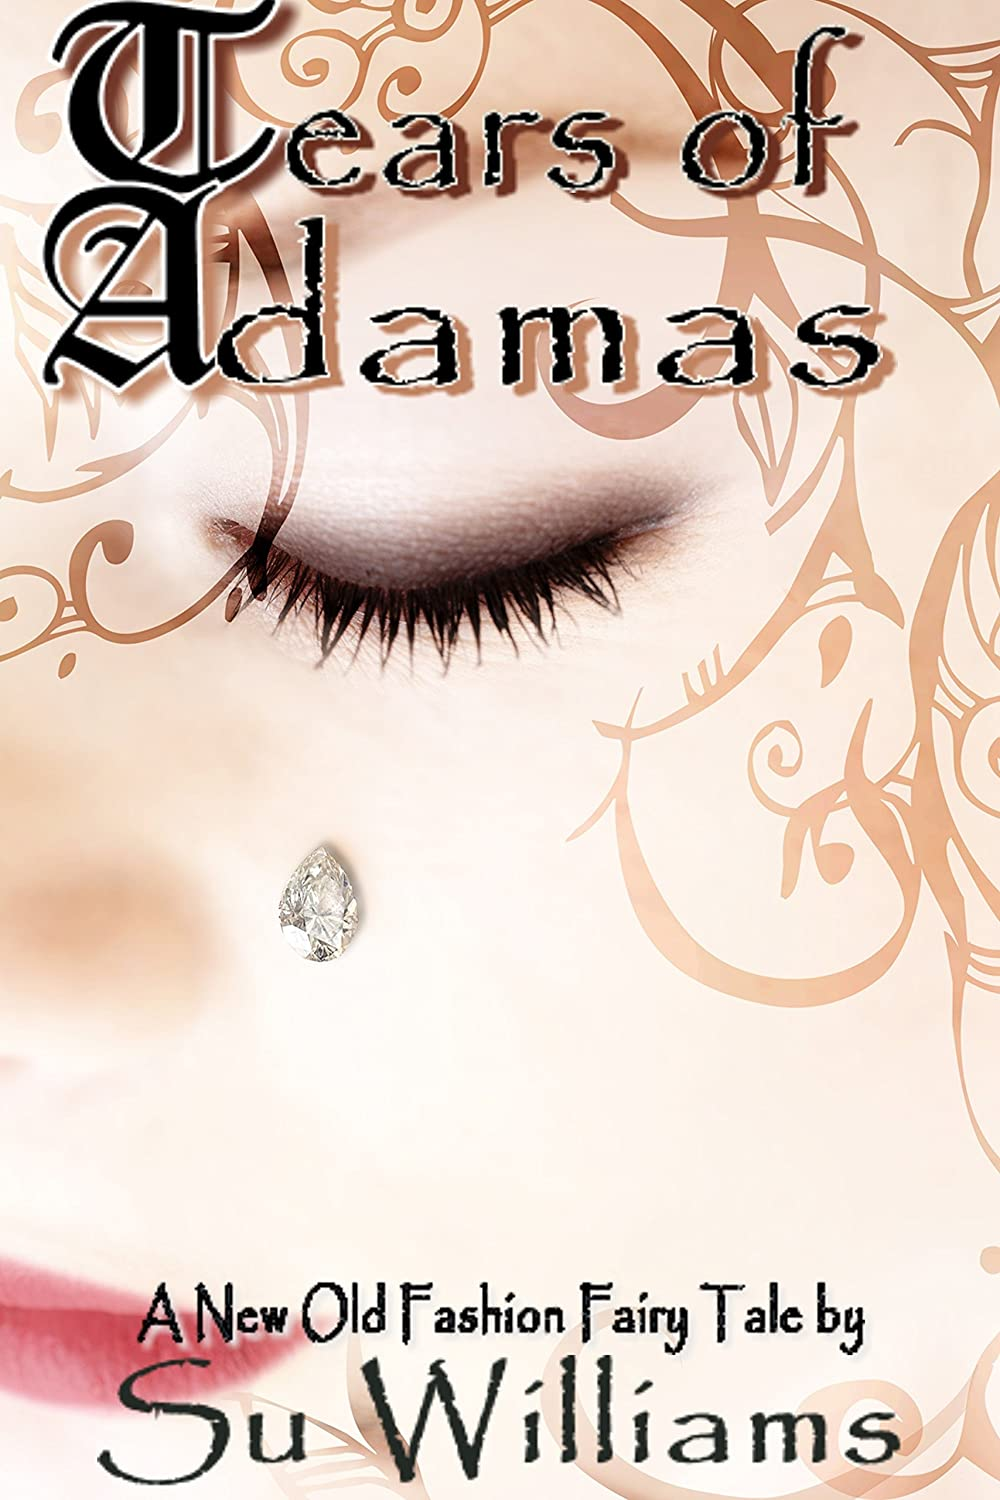 Tears of Adamas: A New Old-Fashion Fairy Tale Short Story (With Bonus Content) by Su Williams